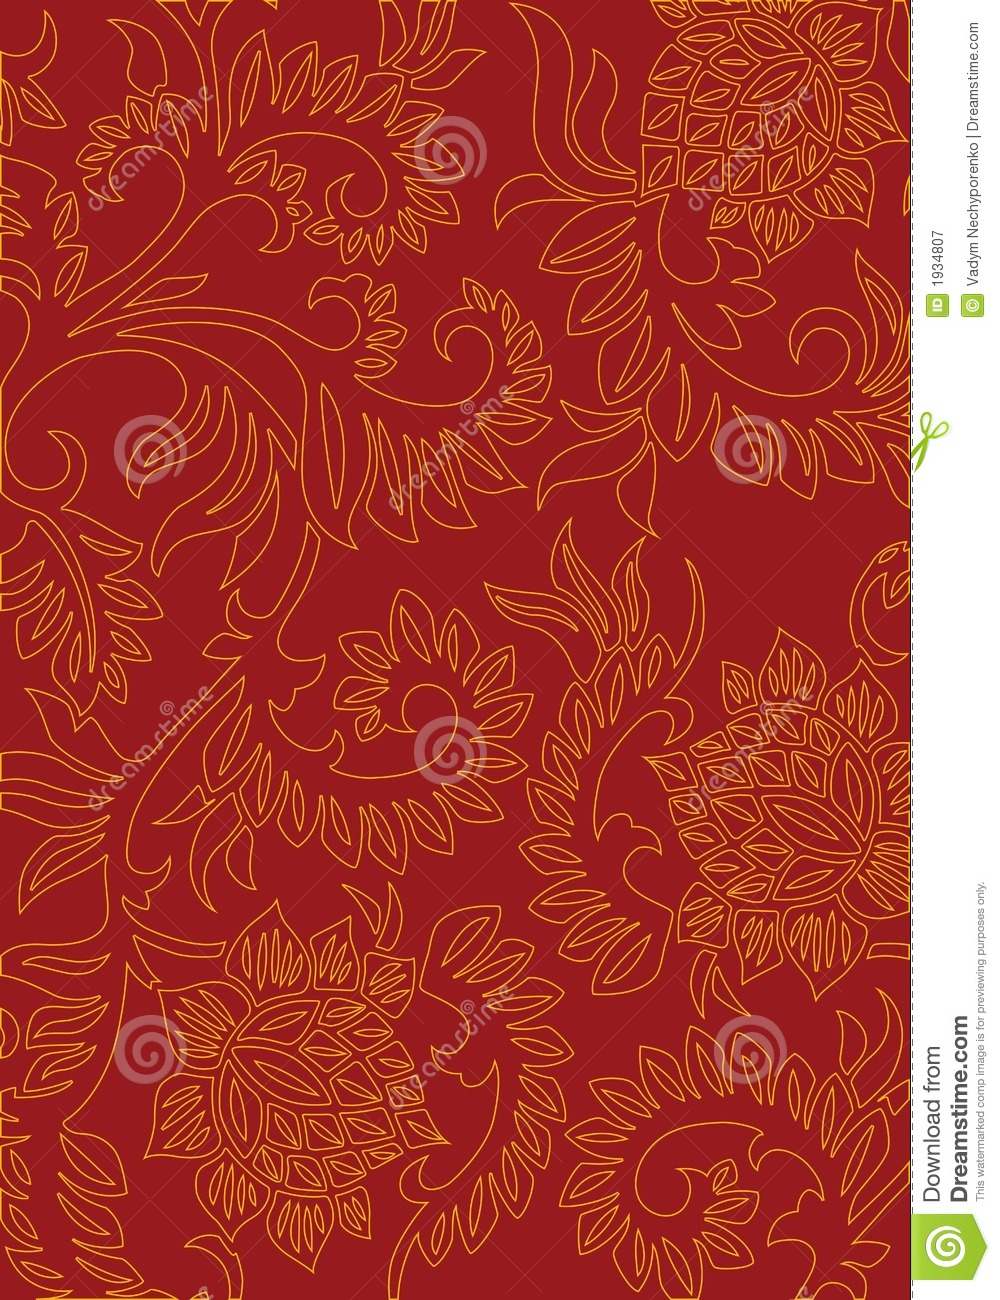 Abstract floral decorative background on red color vector - Dreaming about the color red ...